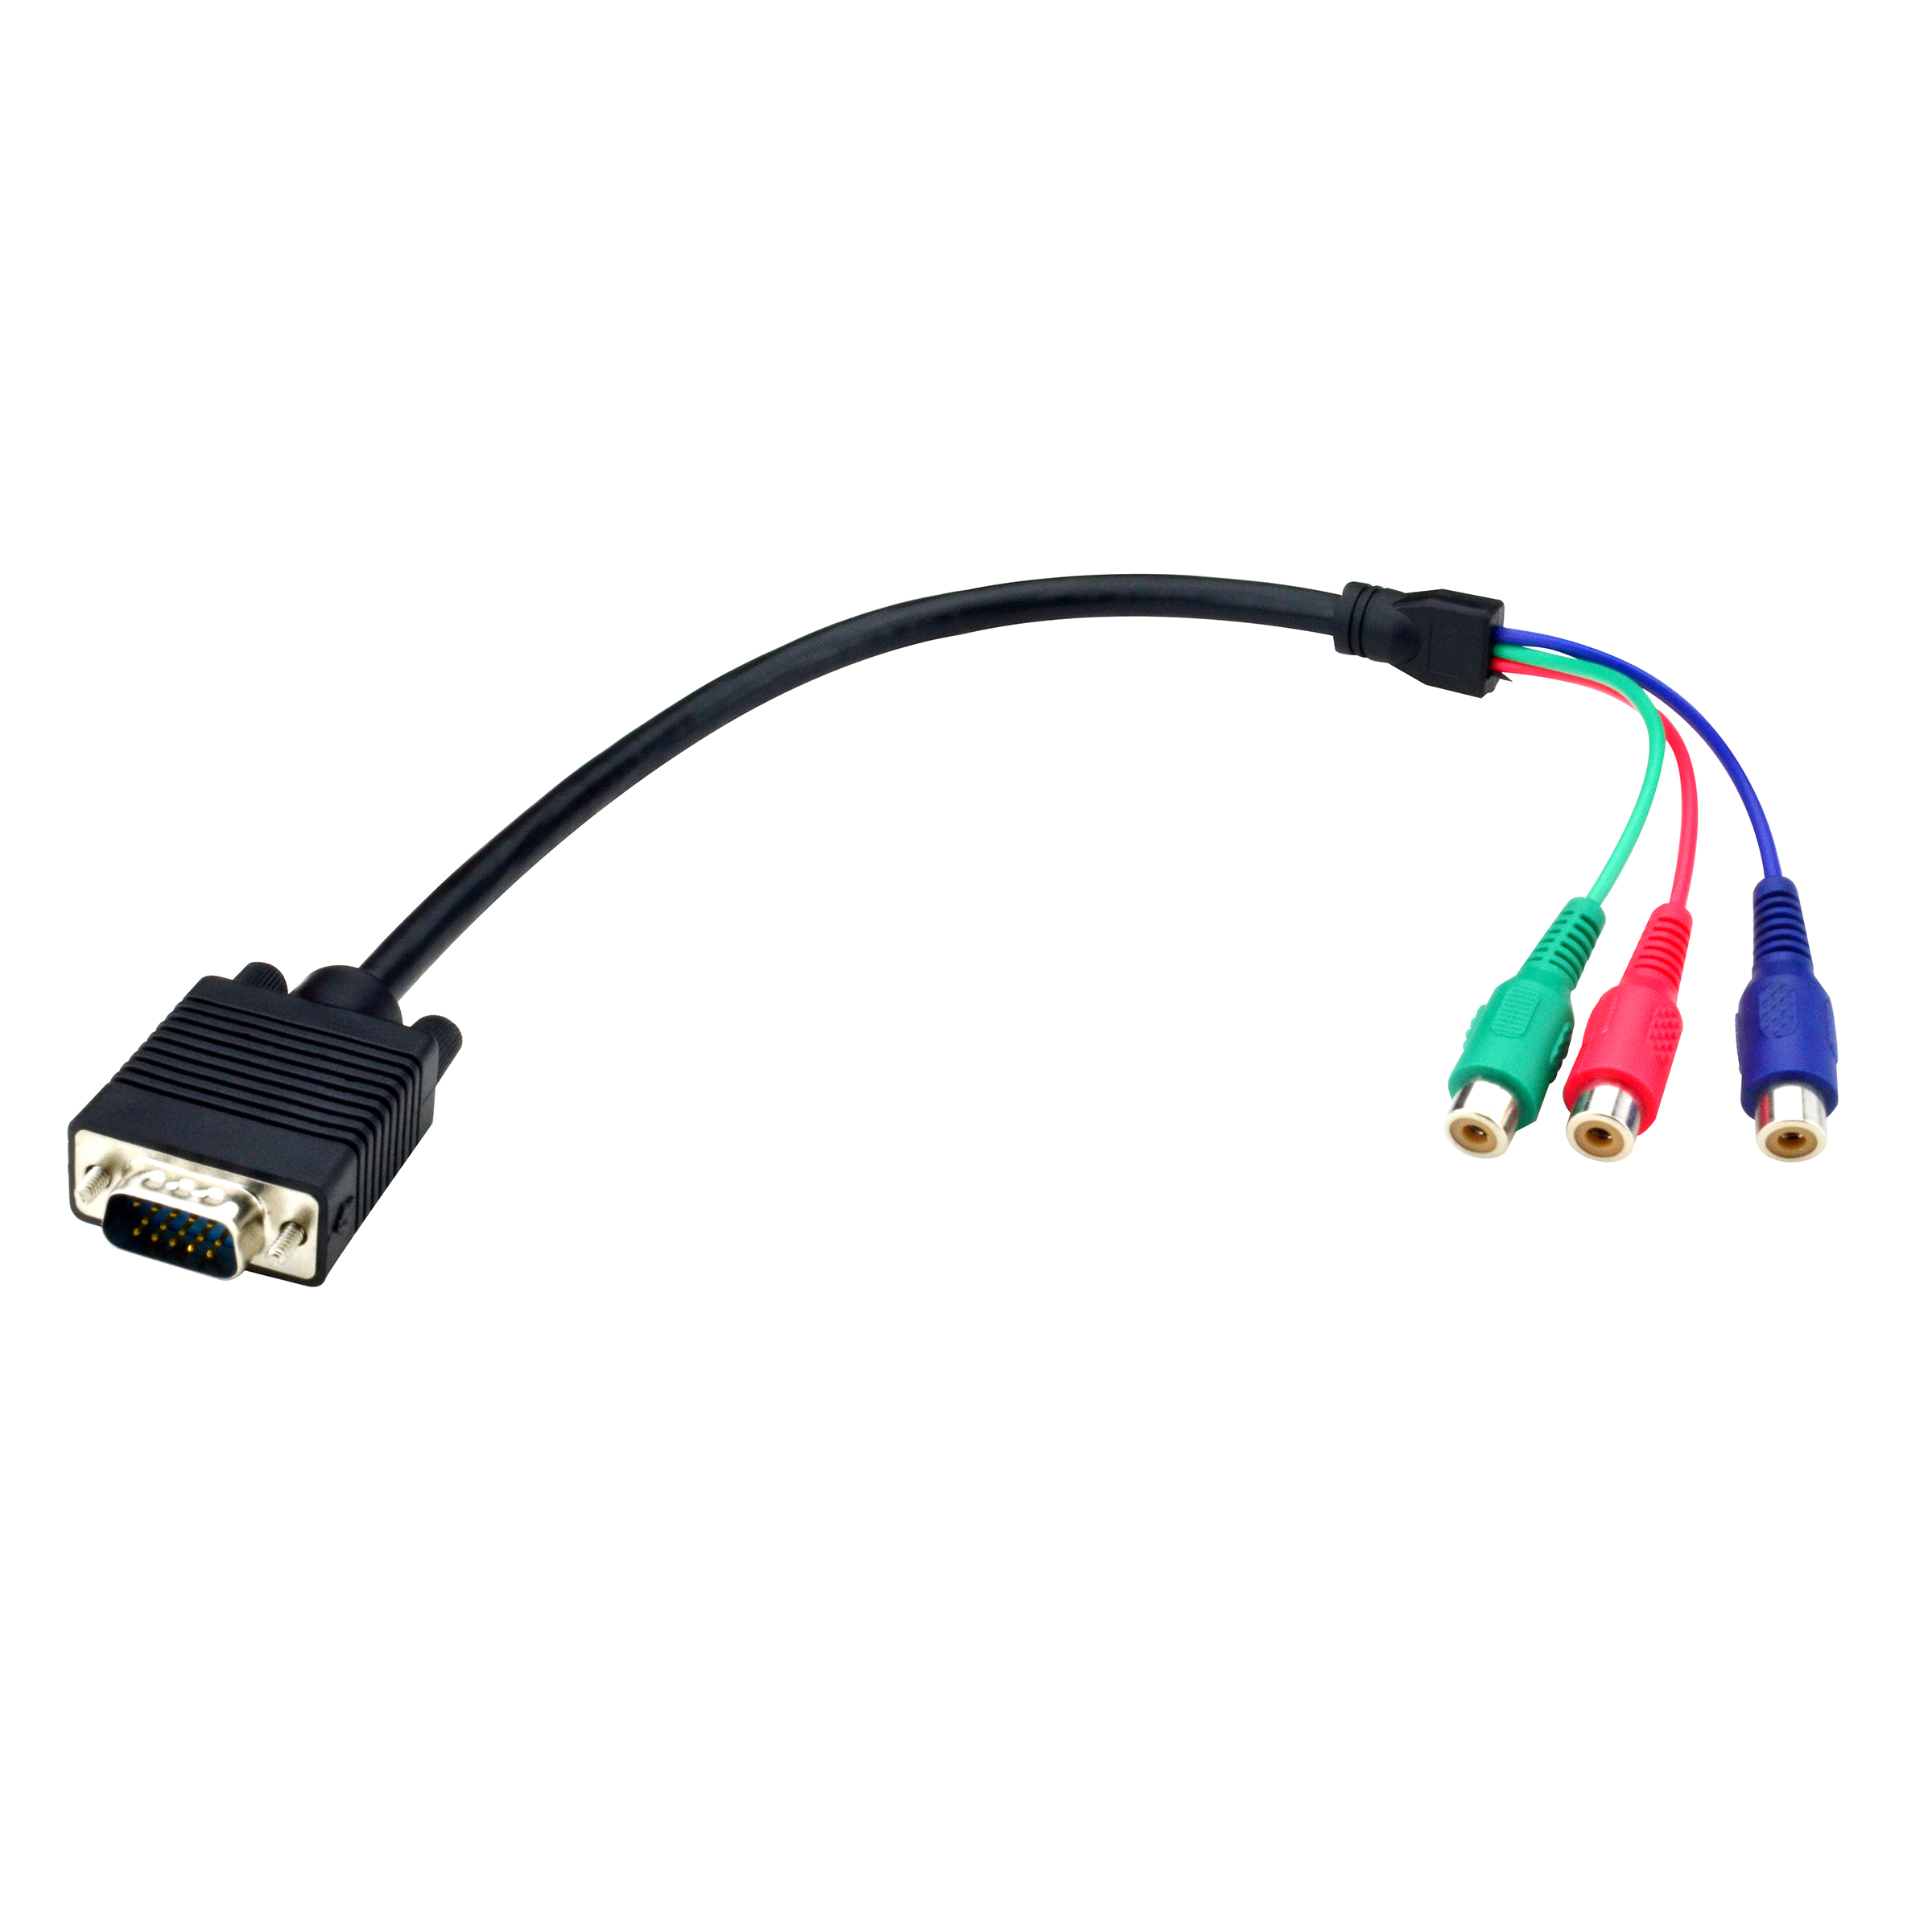 VGA to Component Adapter Cable - 40 cm | Black Box